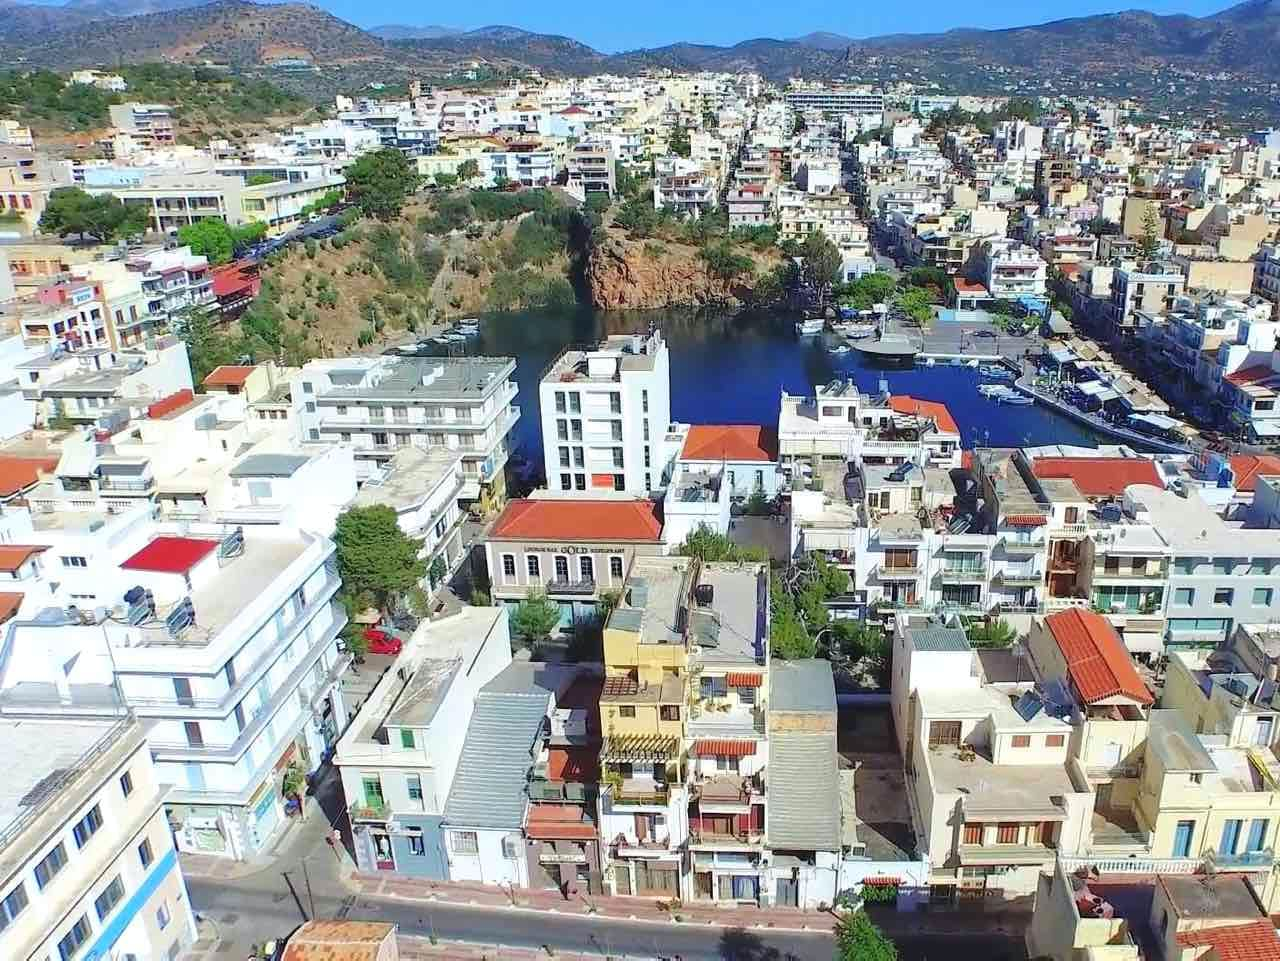 agios nikolaos crete travel guide, agios nikolaos best guide, agios nikolaos things to do, agios nikolaos gastronomy, events, restaurants, hotels, activities, personal guide agios nikolaos, reviews agios nikolaos, the crete you are looking for